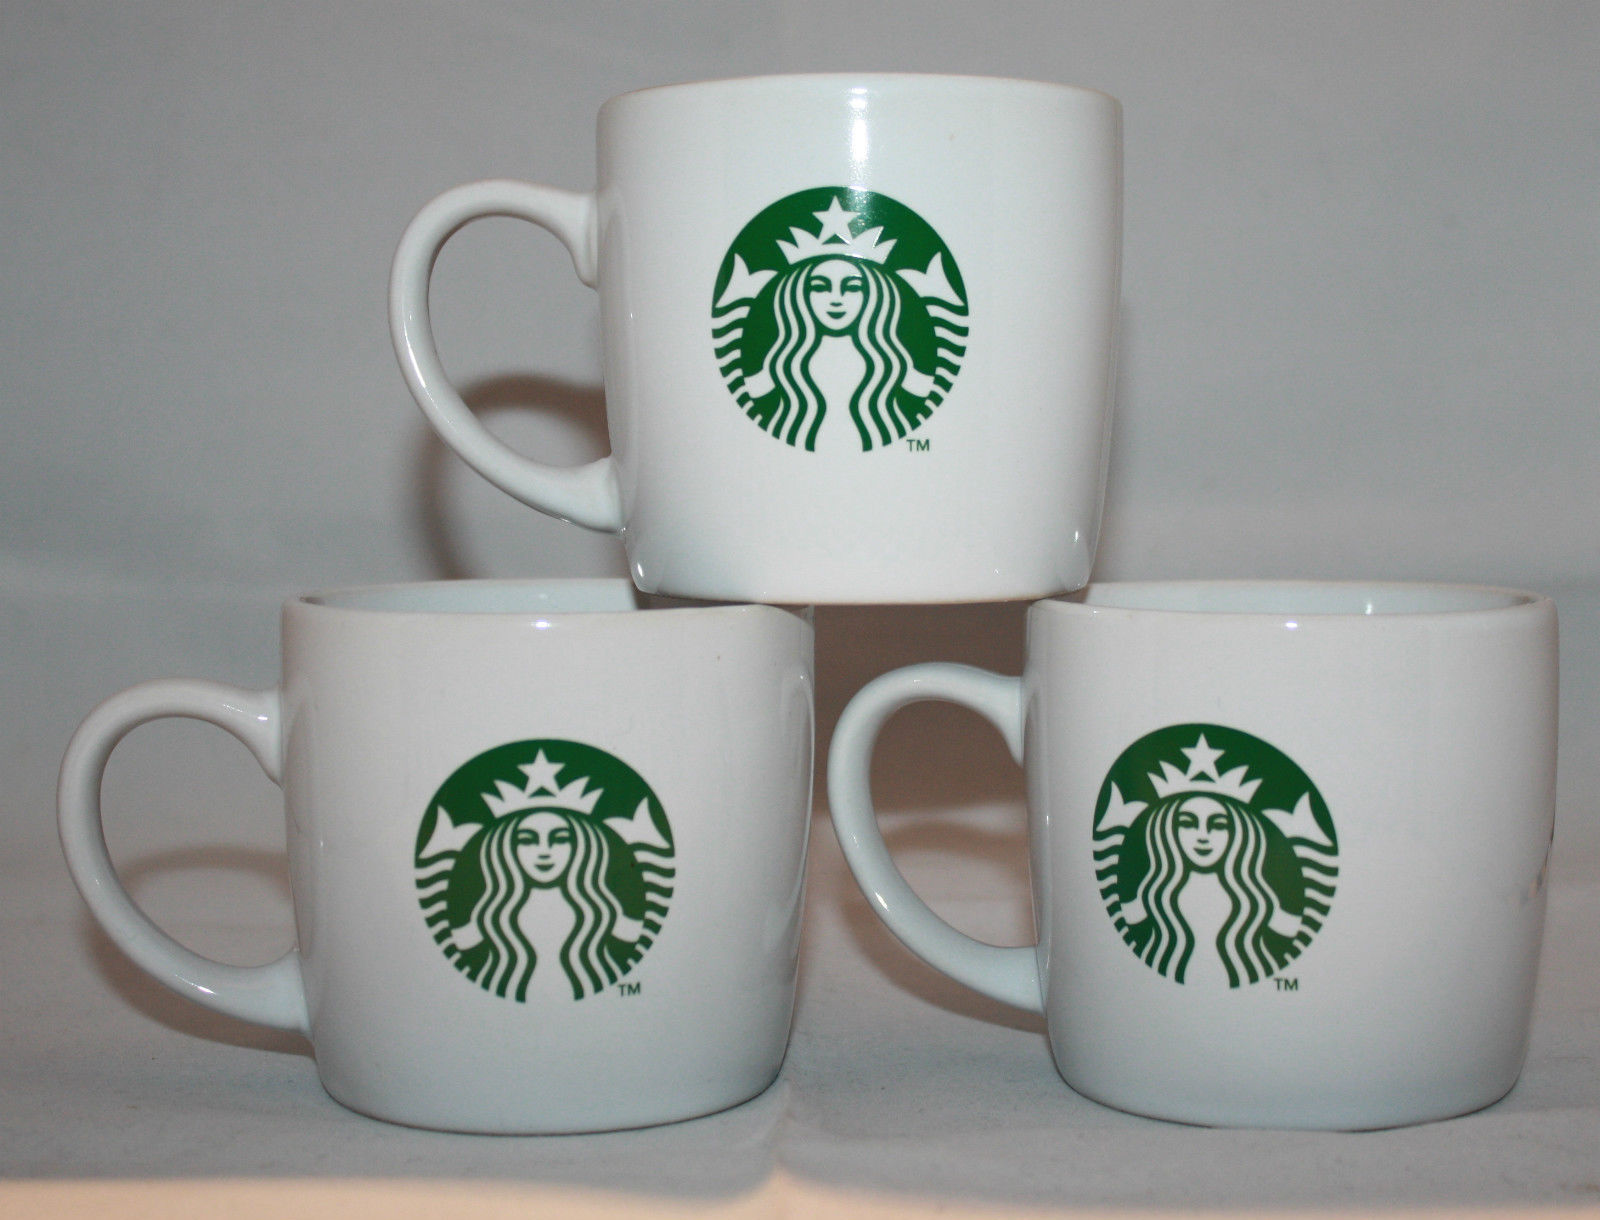 Primary image for Starbucks Coffee 3 White Mermaid Logo Coffee/Tea Mug Cups 7.8fl.oz / 230ml AS-IS